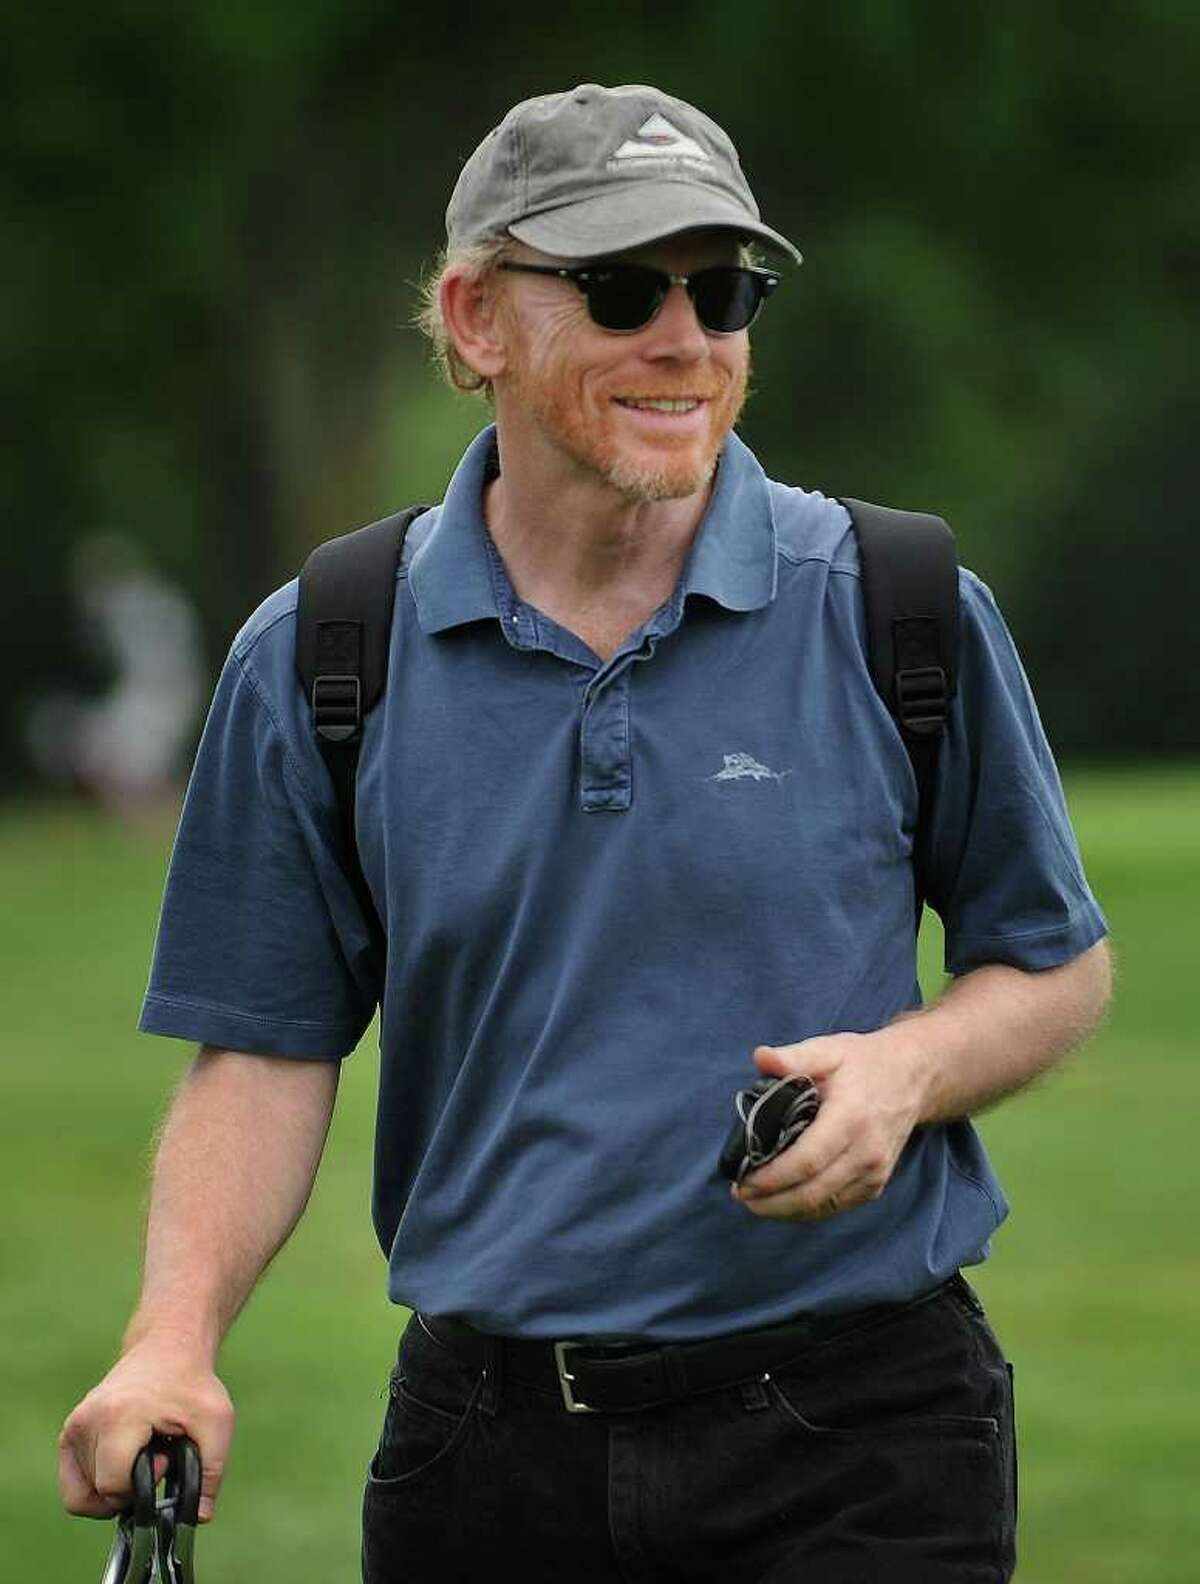 Actor/ movie director Ron Howard watches his son Reed Howard of Greenwich play in the Connecticut Open Golf Tournament at Brooklawn Country Club in Fairfield on Wednesday, July 29, 2011.